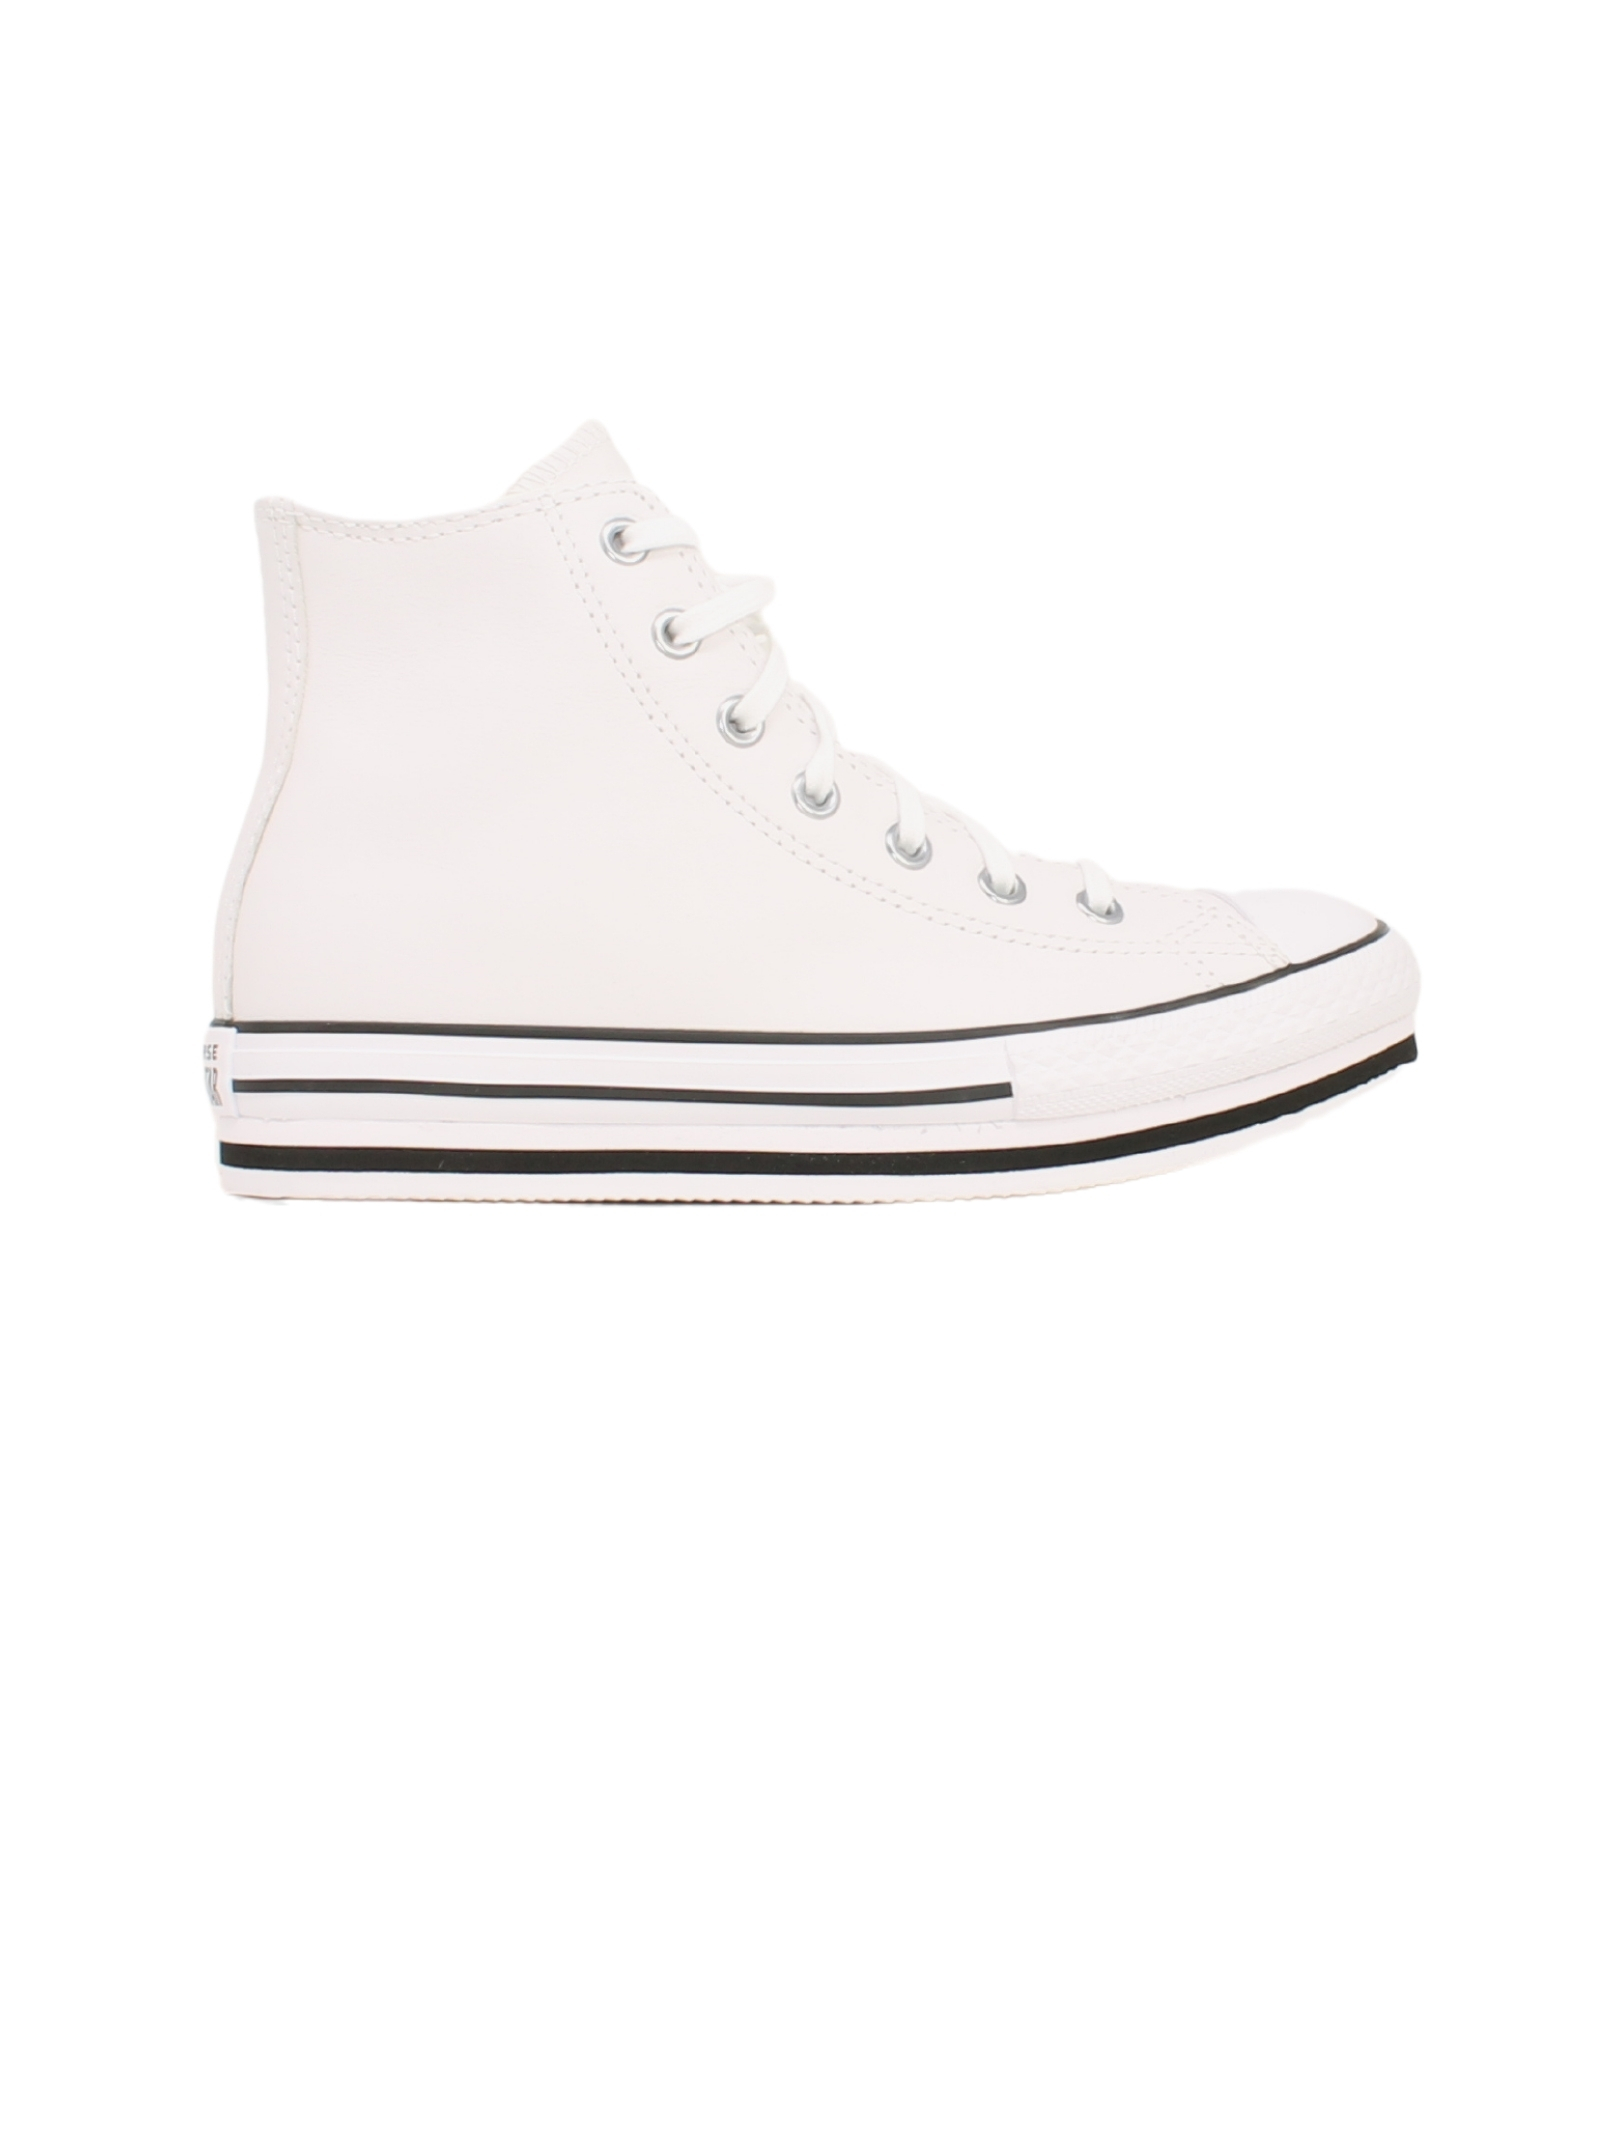 High Sneakers Total White Girl, CONVERSE KIDS | Sneakers | 666392CBIANCO